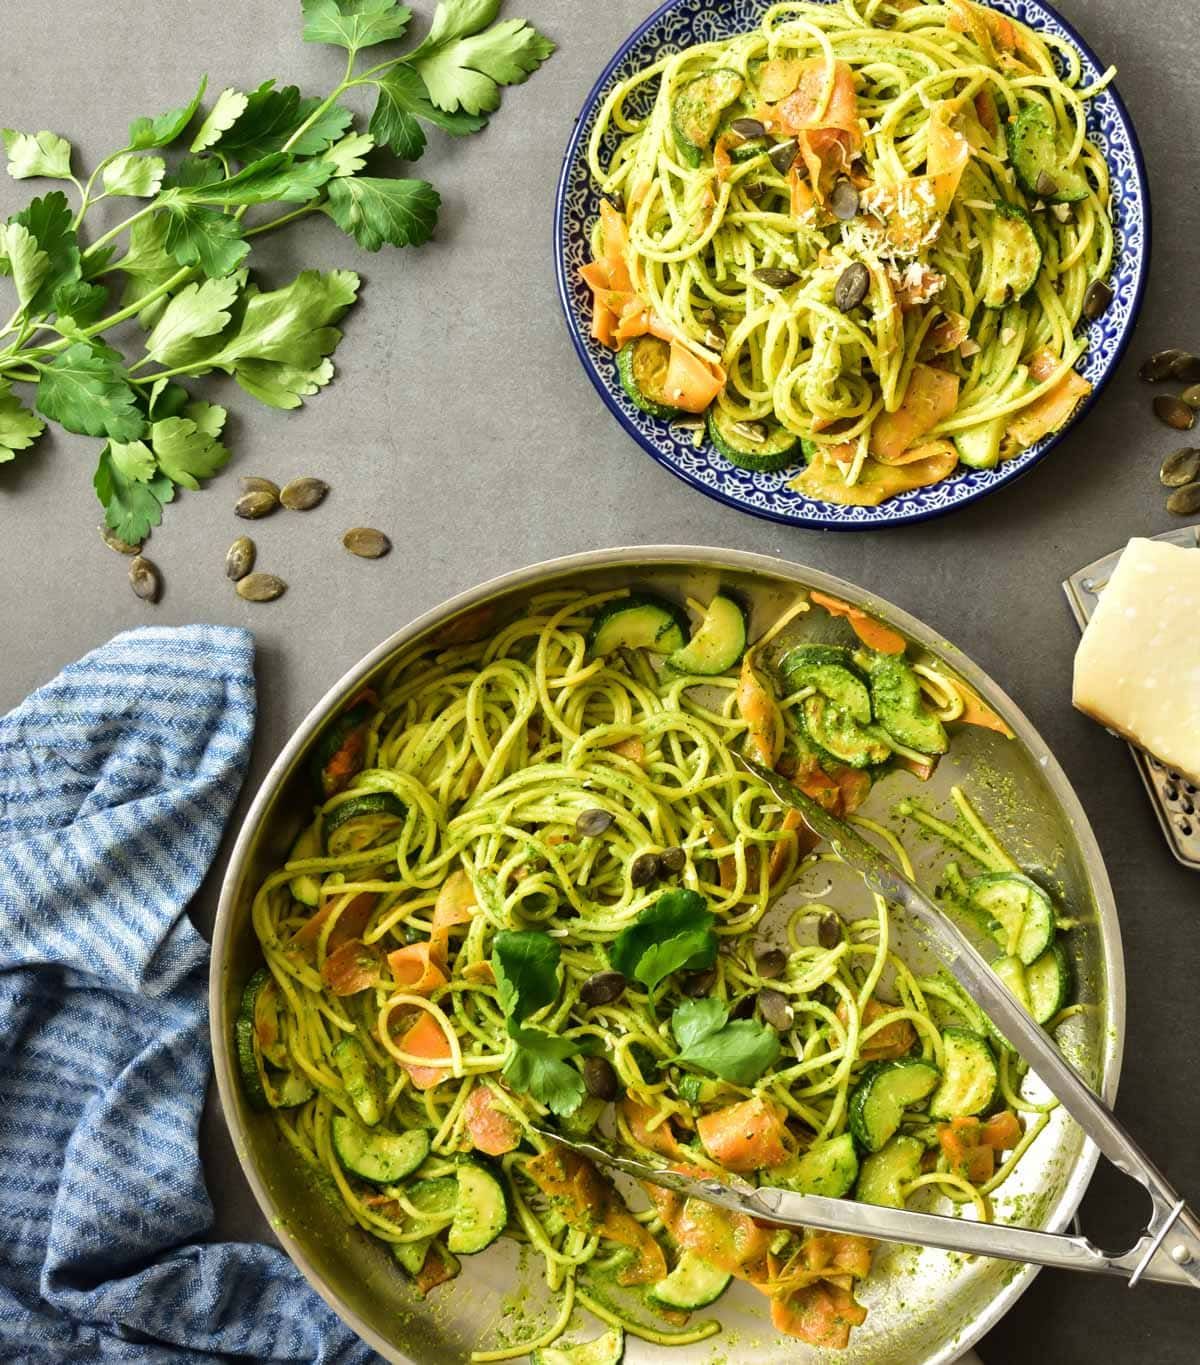 Parsley pesto pasta with zucchini and carrots in a pan and on a plate.